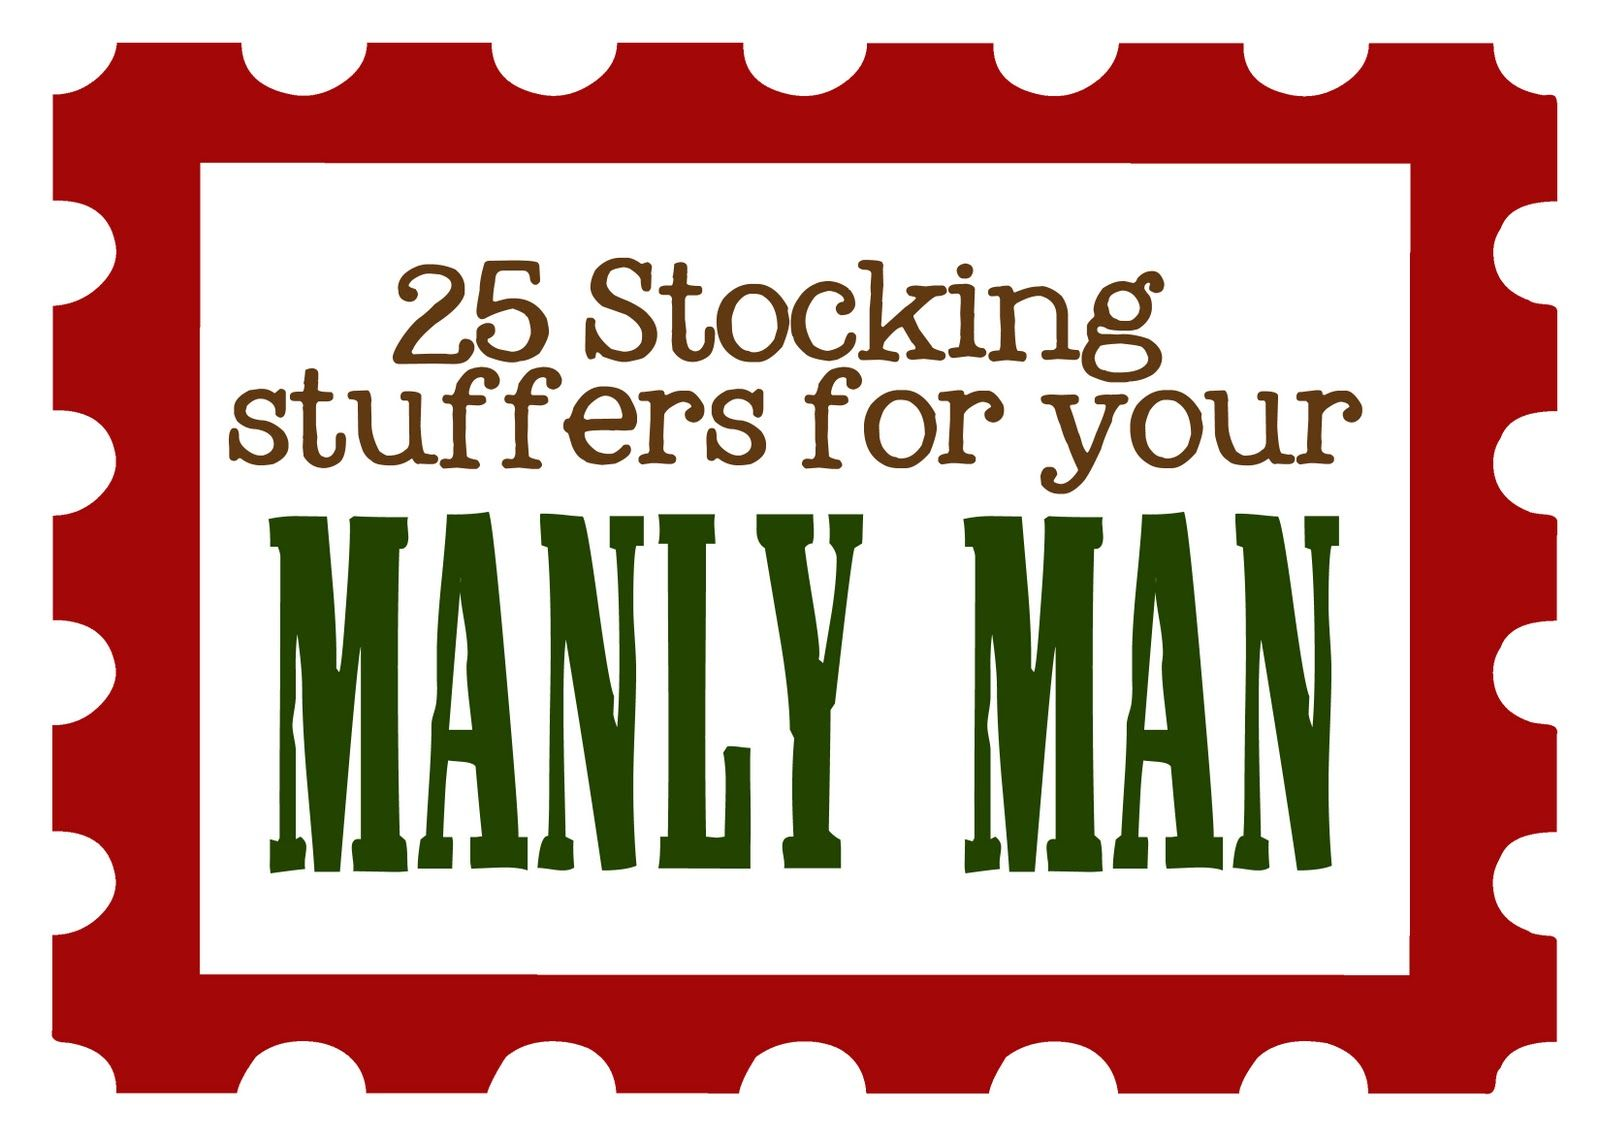 Stocking ideas for guys (dads, husbands, brothers)